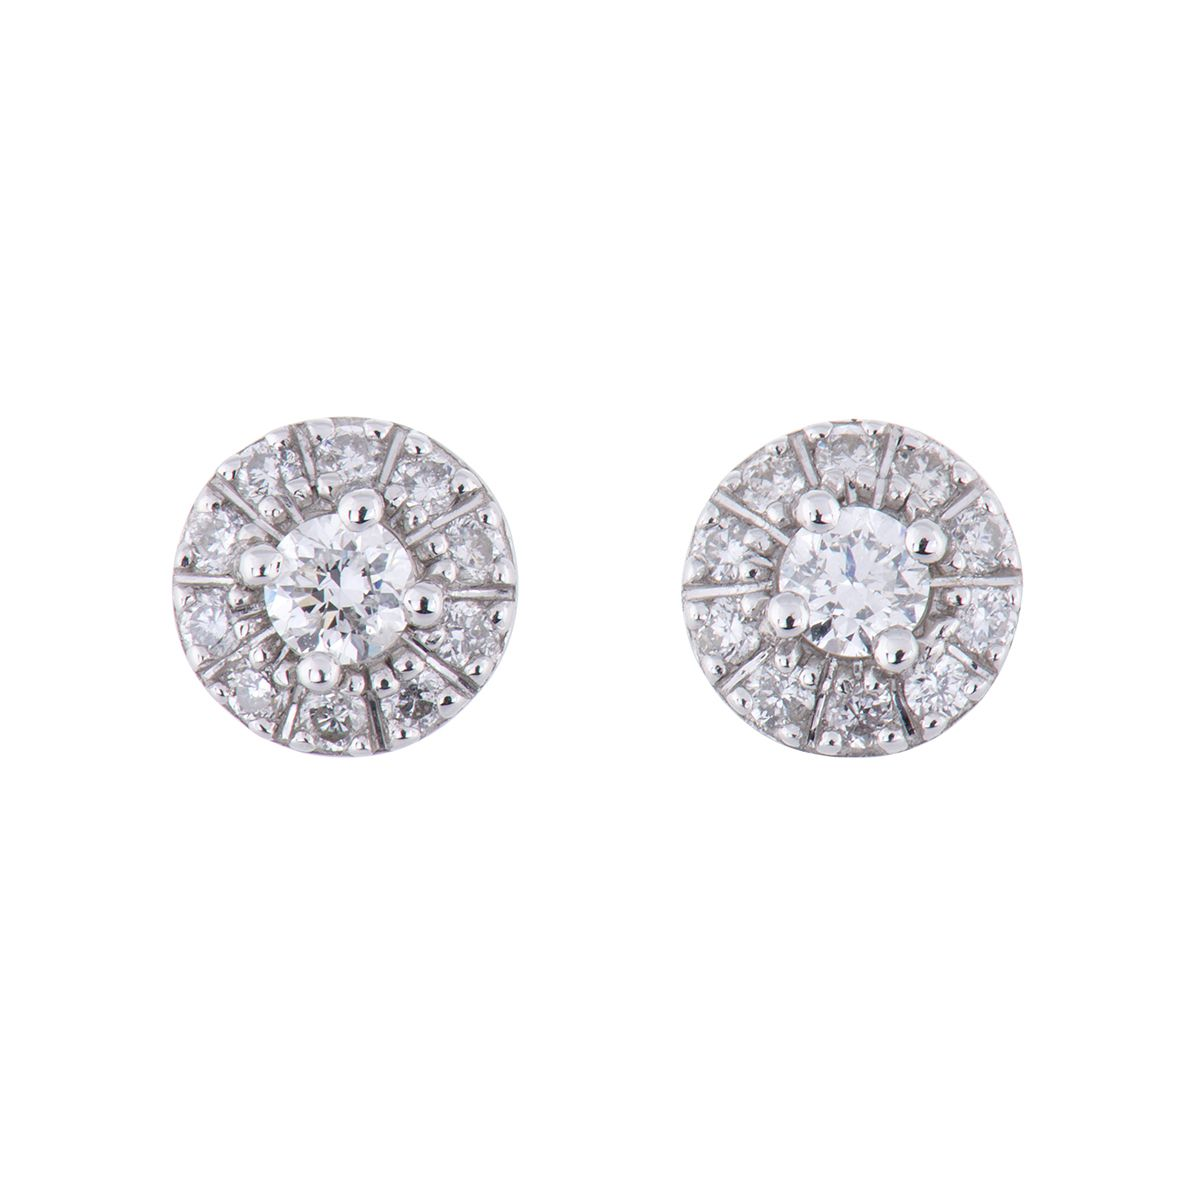 3f098df70e63f1 9ct White Gold round brilliant cluster 0.20ct earrings #chisholmhunter  #chlovestory